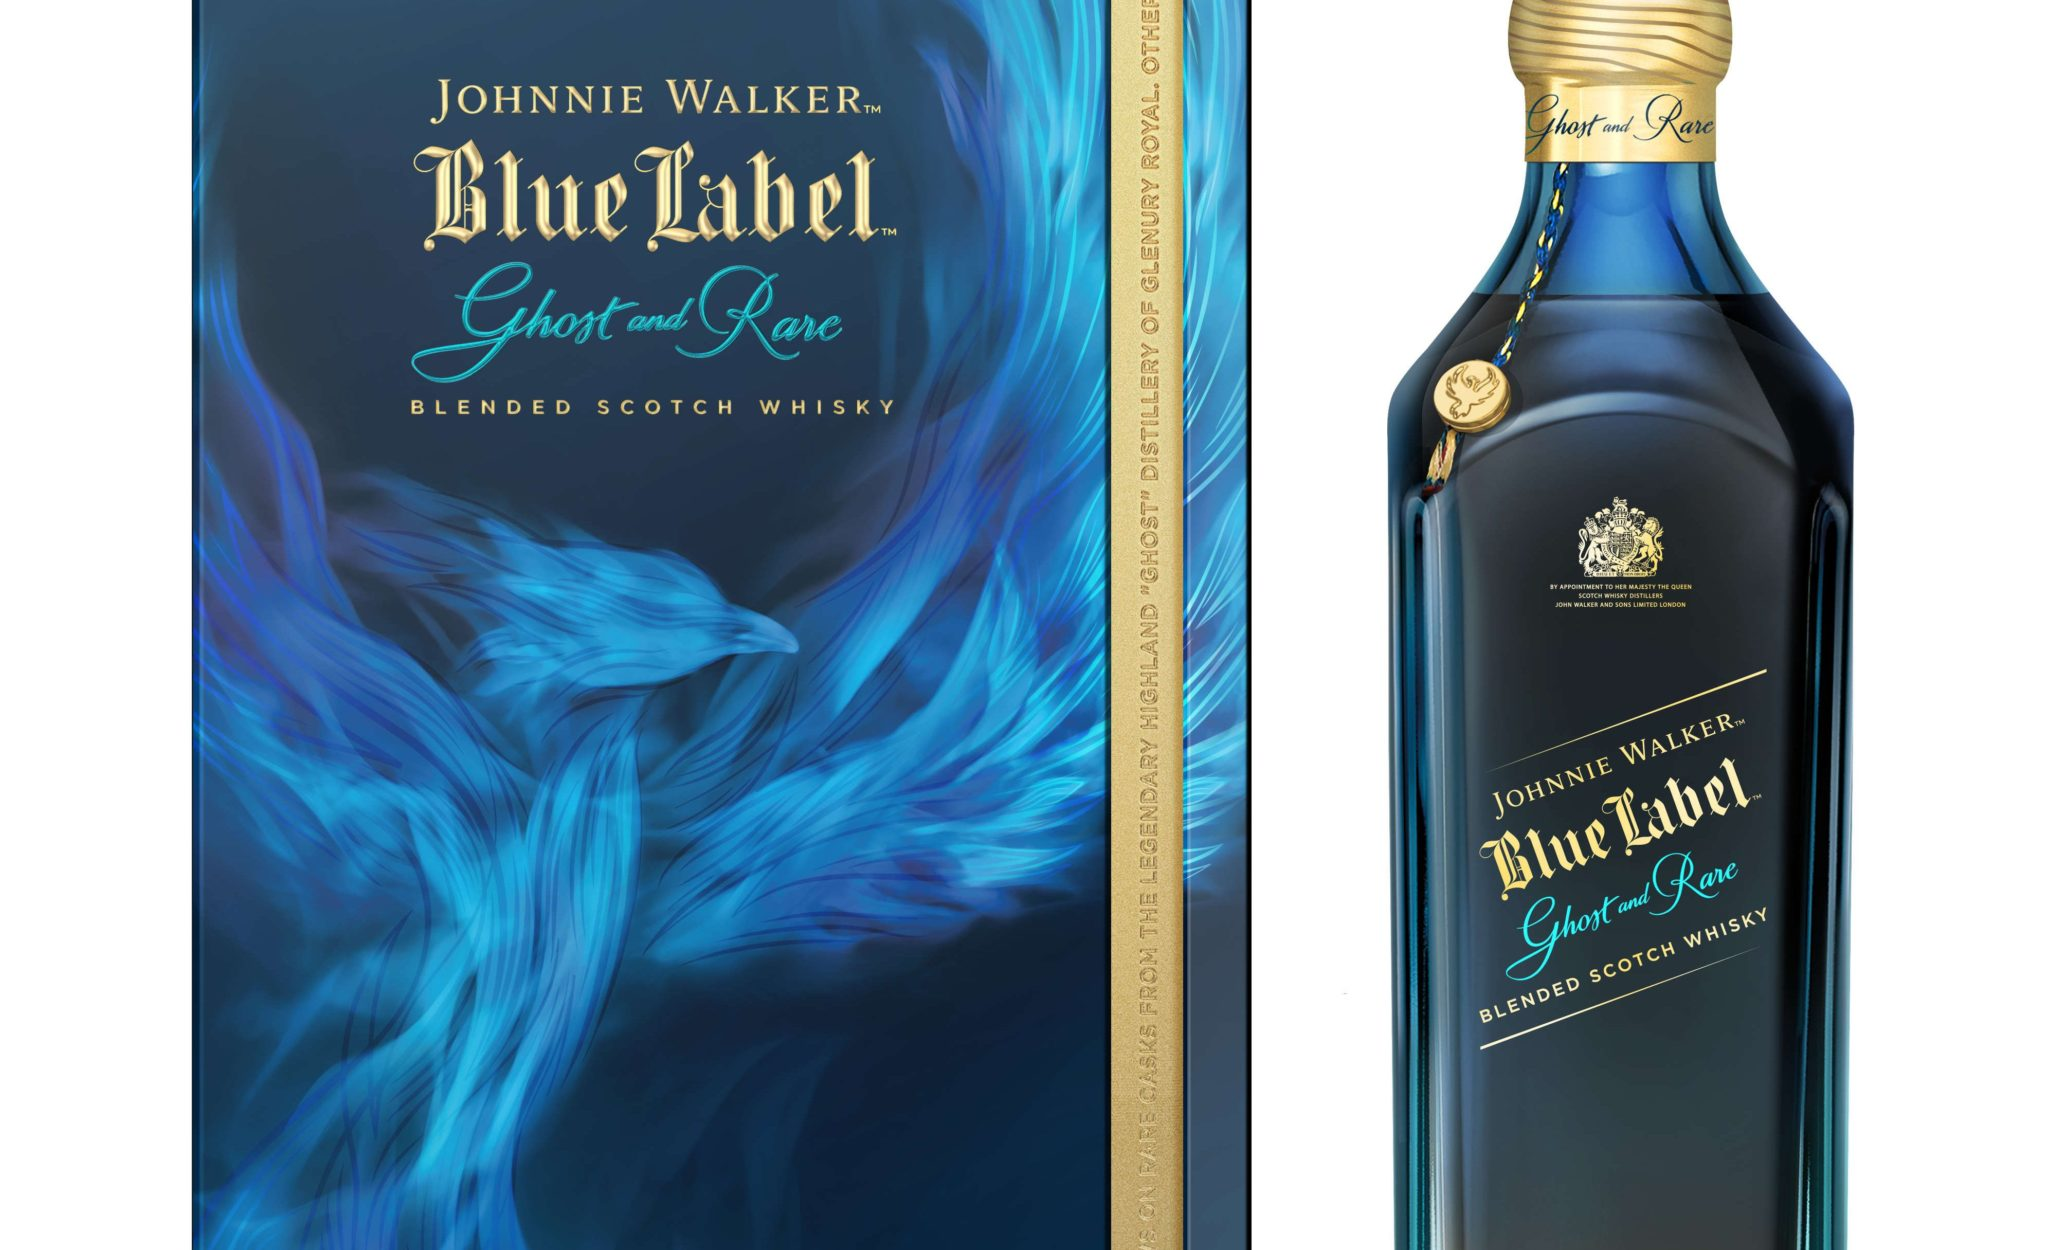 Johnnie Walker Blue Label Ghost and Rare Glenury Royal_